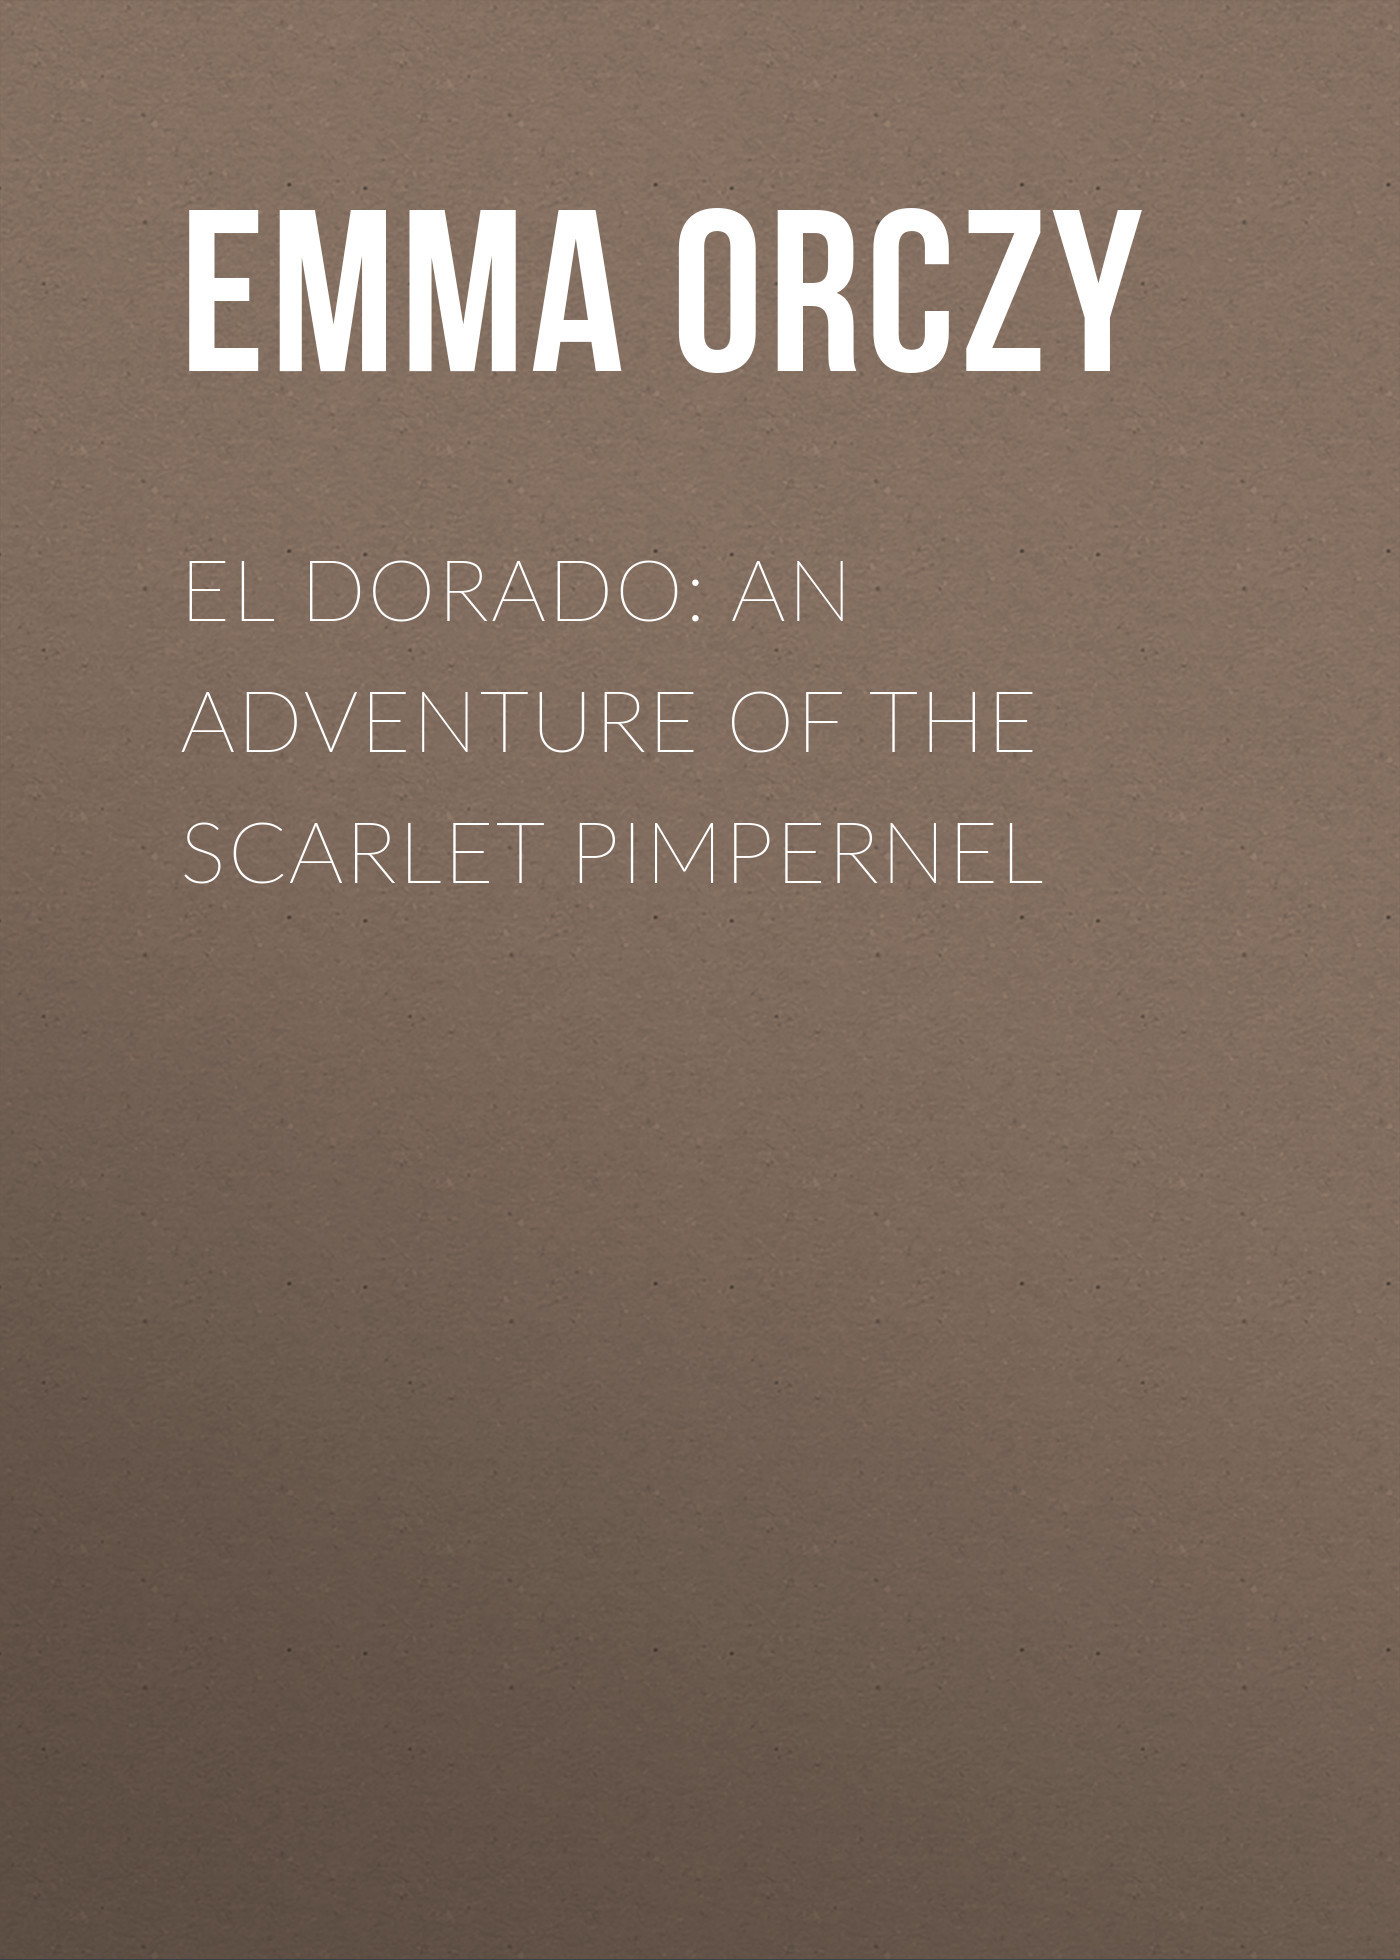 Emma Orczy El Dorado: An Adventure of the Scarlet Pimpernel cd shakira el dorado